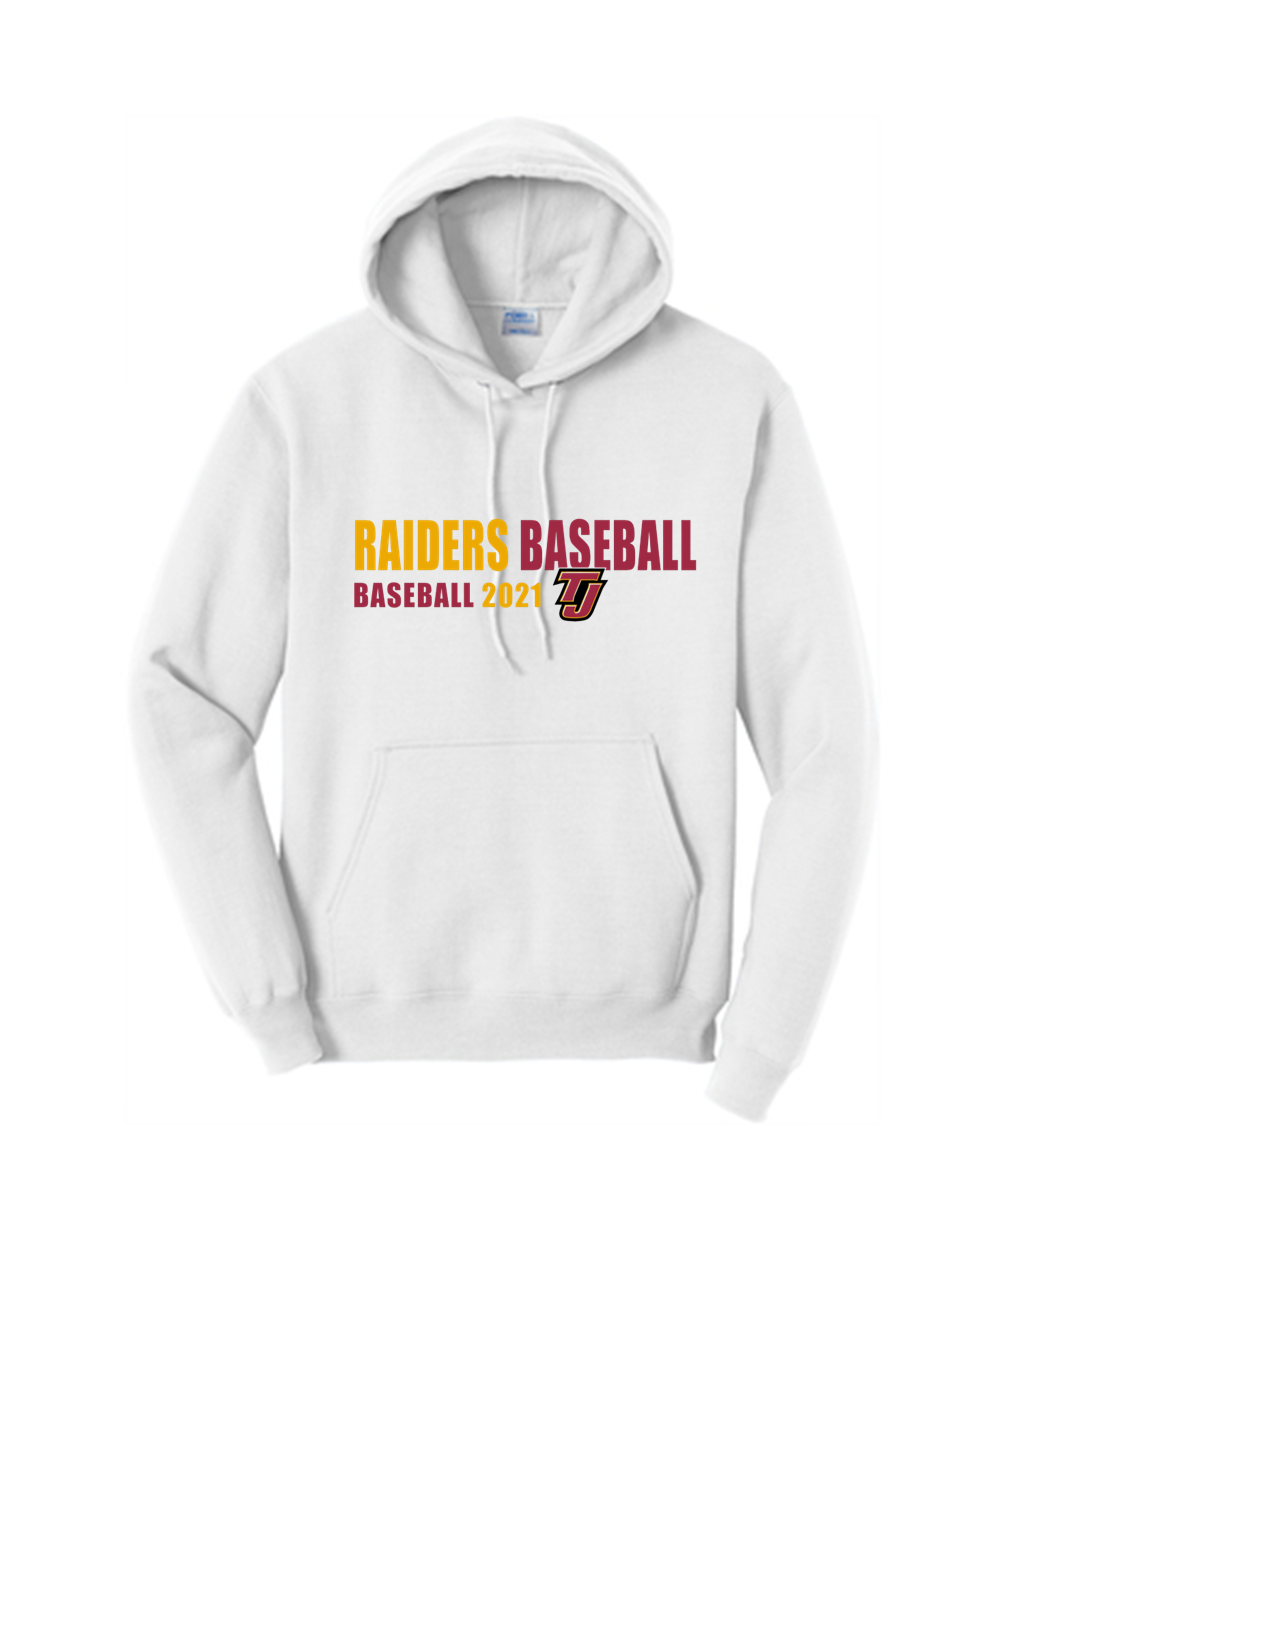 Raiders Baseball Hoody